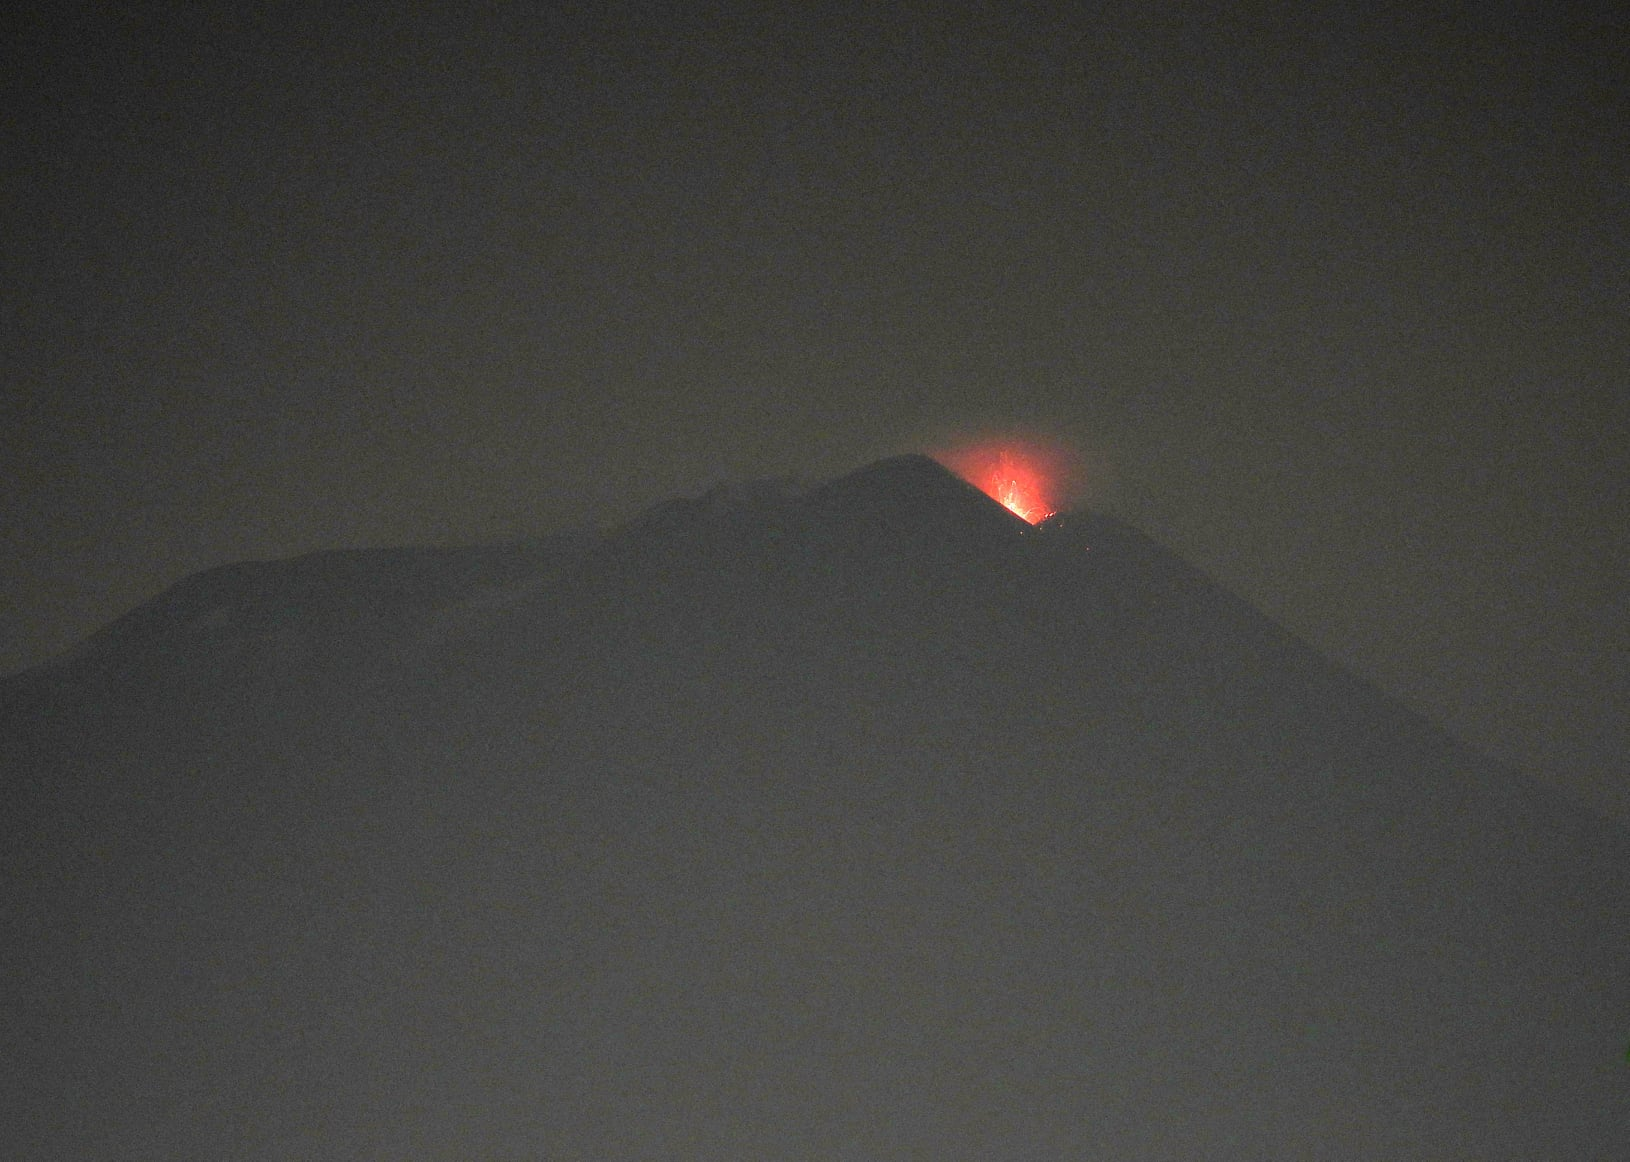 Weak strombolian eruption at Etna's New SE crater last evening (image: Boris Behncke / facebook.com/boris.behncke)